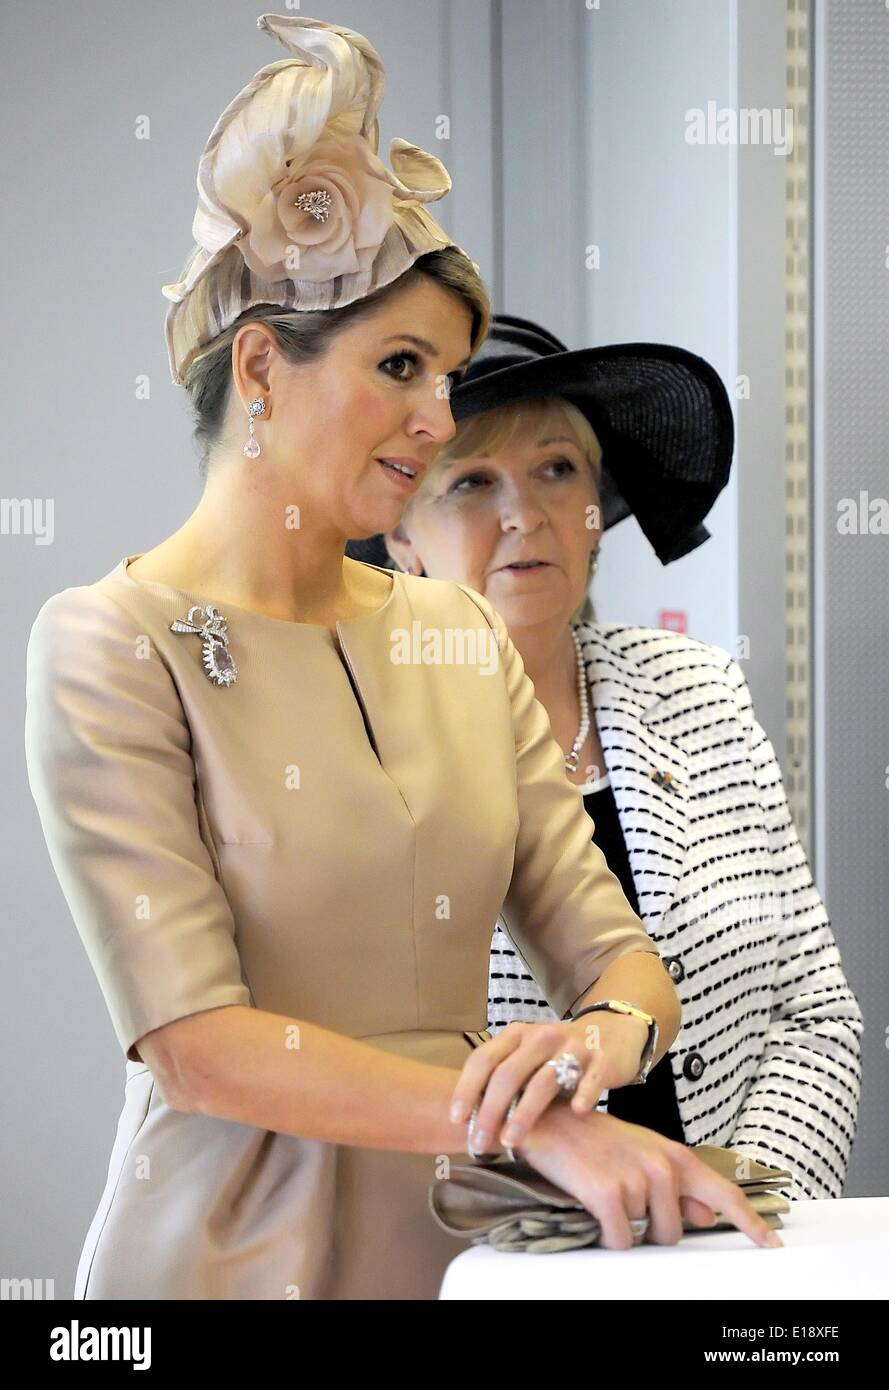 Dortmund, Germany. 27th May, 2014. Queen Maxima of the Netherlands and North Rhine-Westphalia's Premier Hannelore Kraft (SPD, L, back) listen to a speech at the Fraunhofer Institute in Dortmund, Germany, 27 May 2014. The Dutch royal couple is on a two-day visit to Germany. Photo: Henning Kaiser/dpa/Alamy Live News - Stock Image